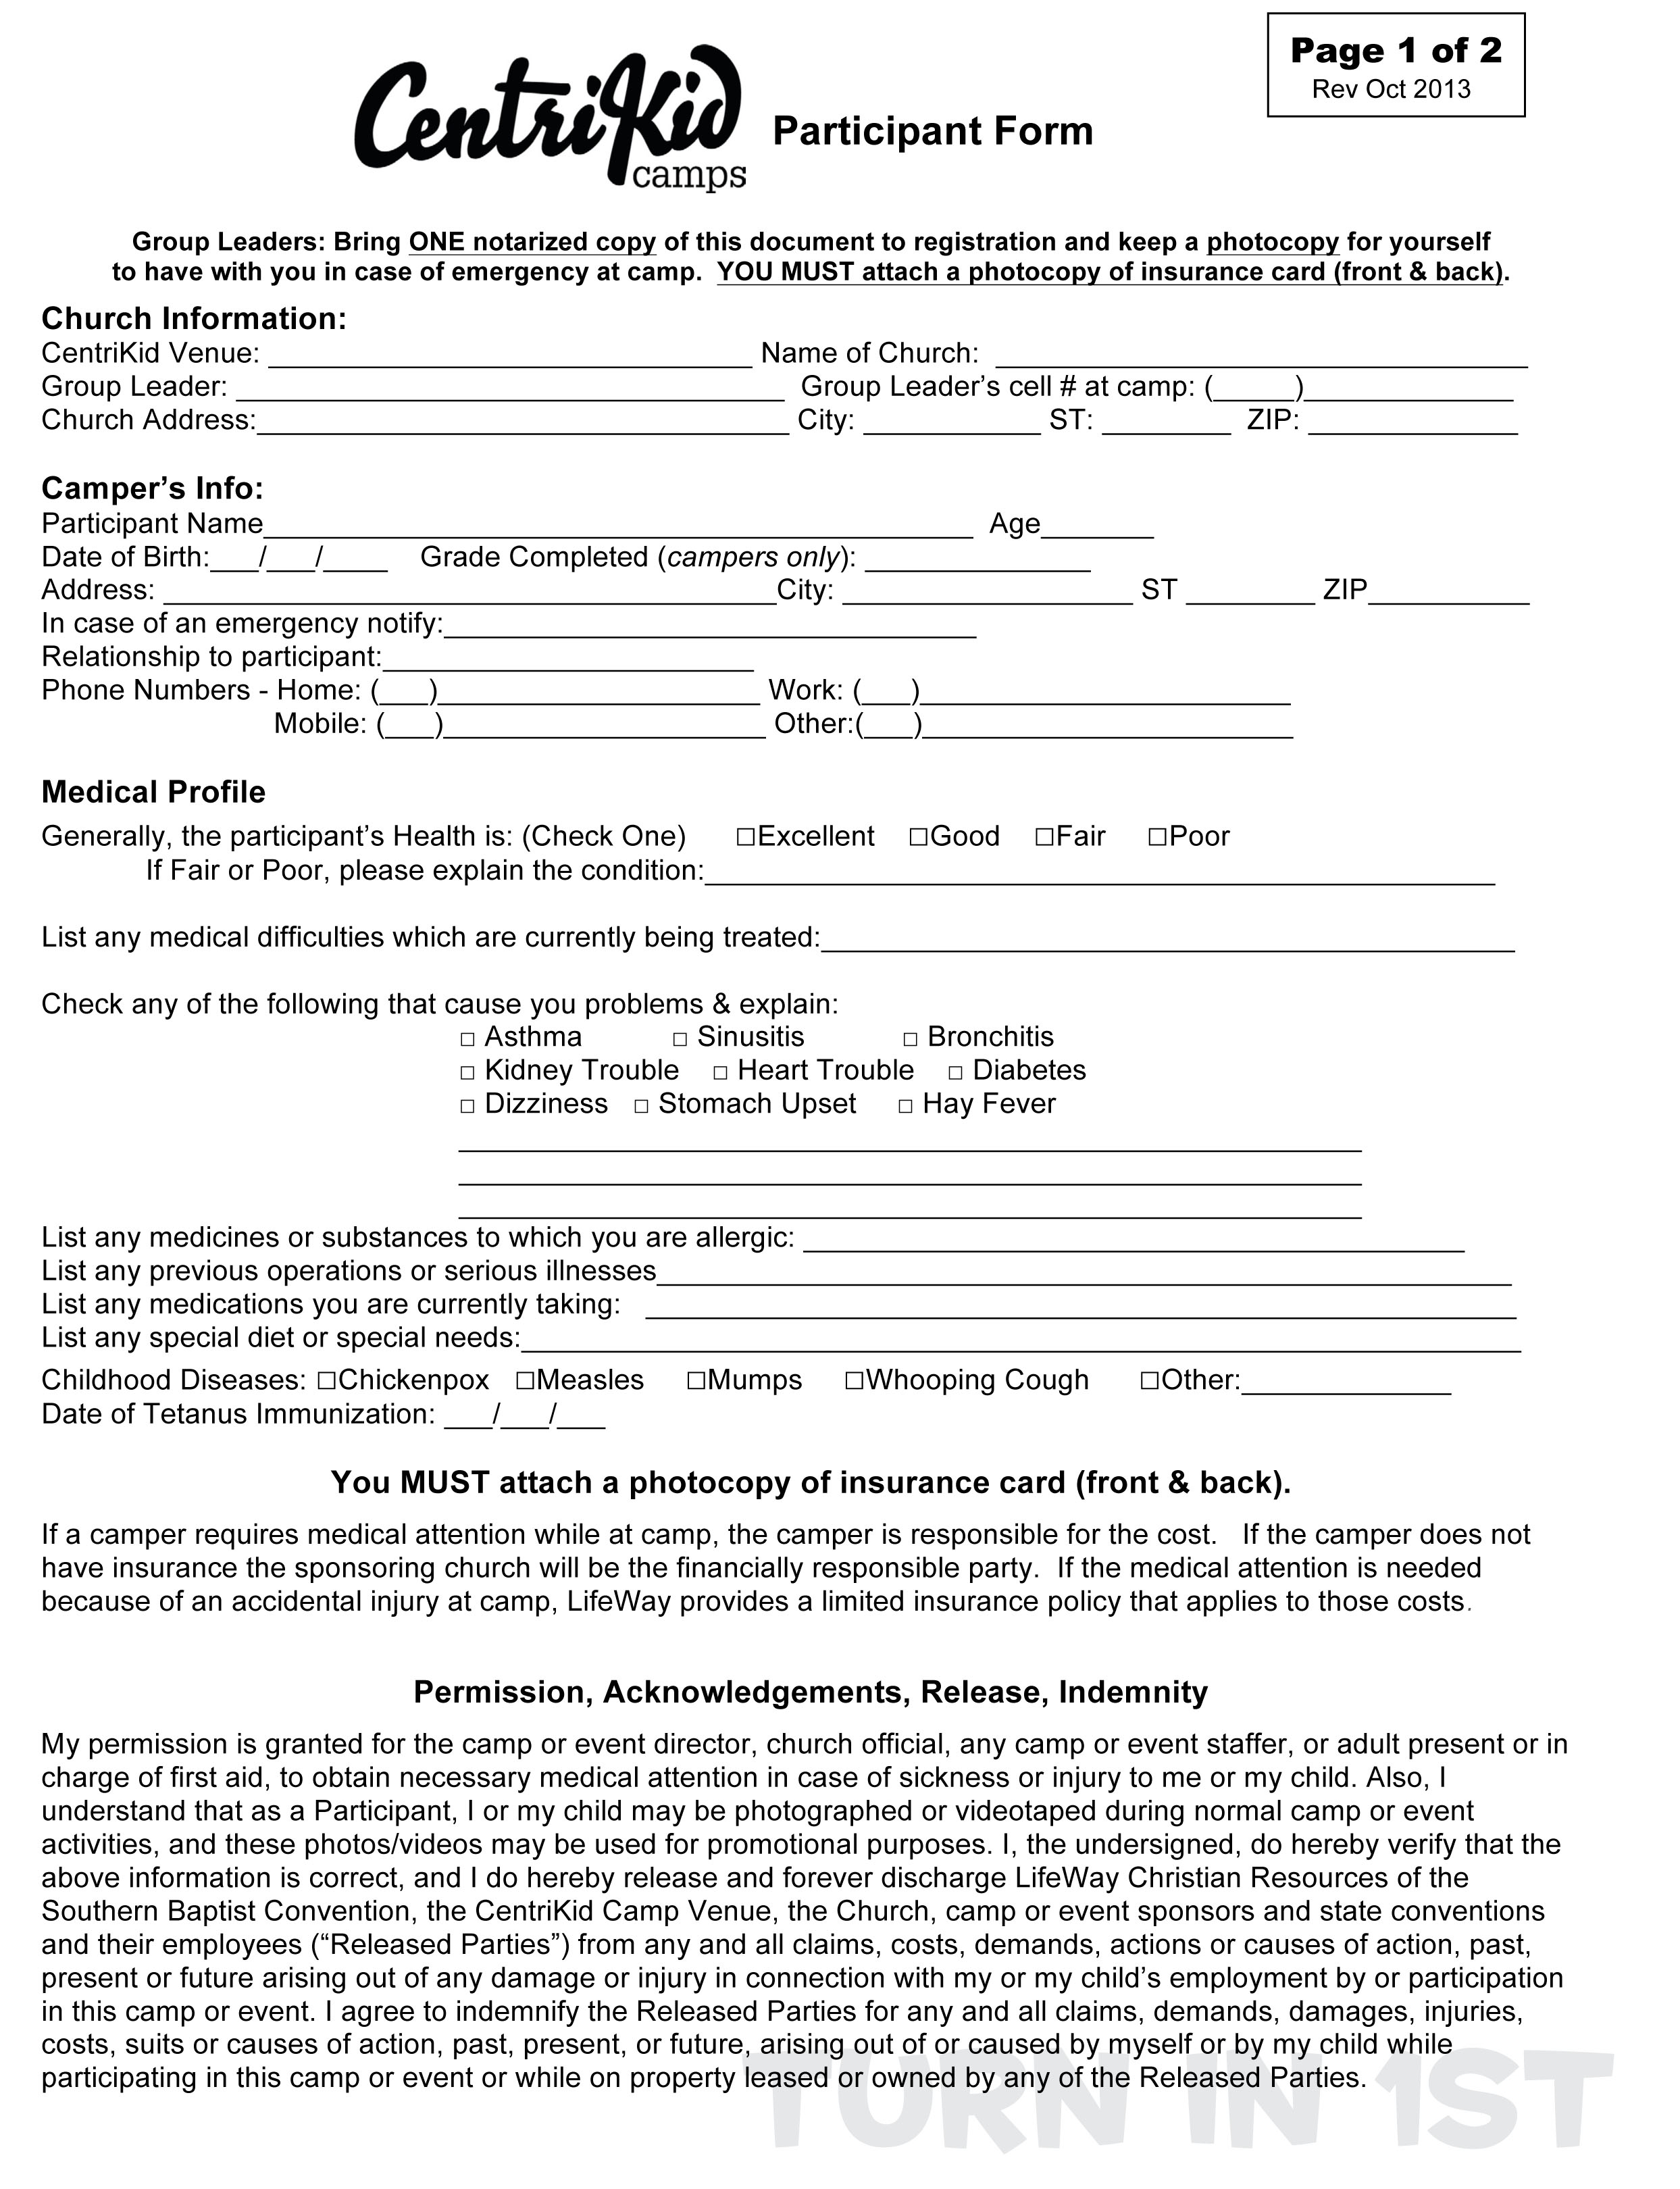 Medical Release Letter Template - 2015 Centrikid Release form First Baptist Church fort Payne